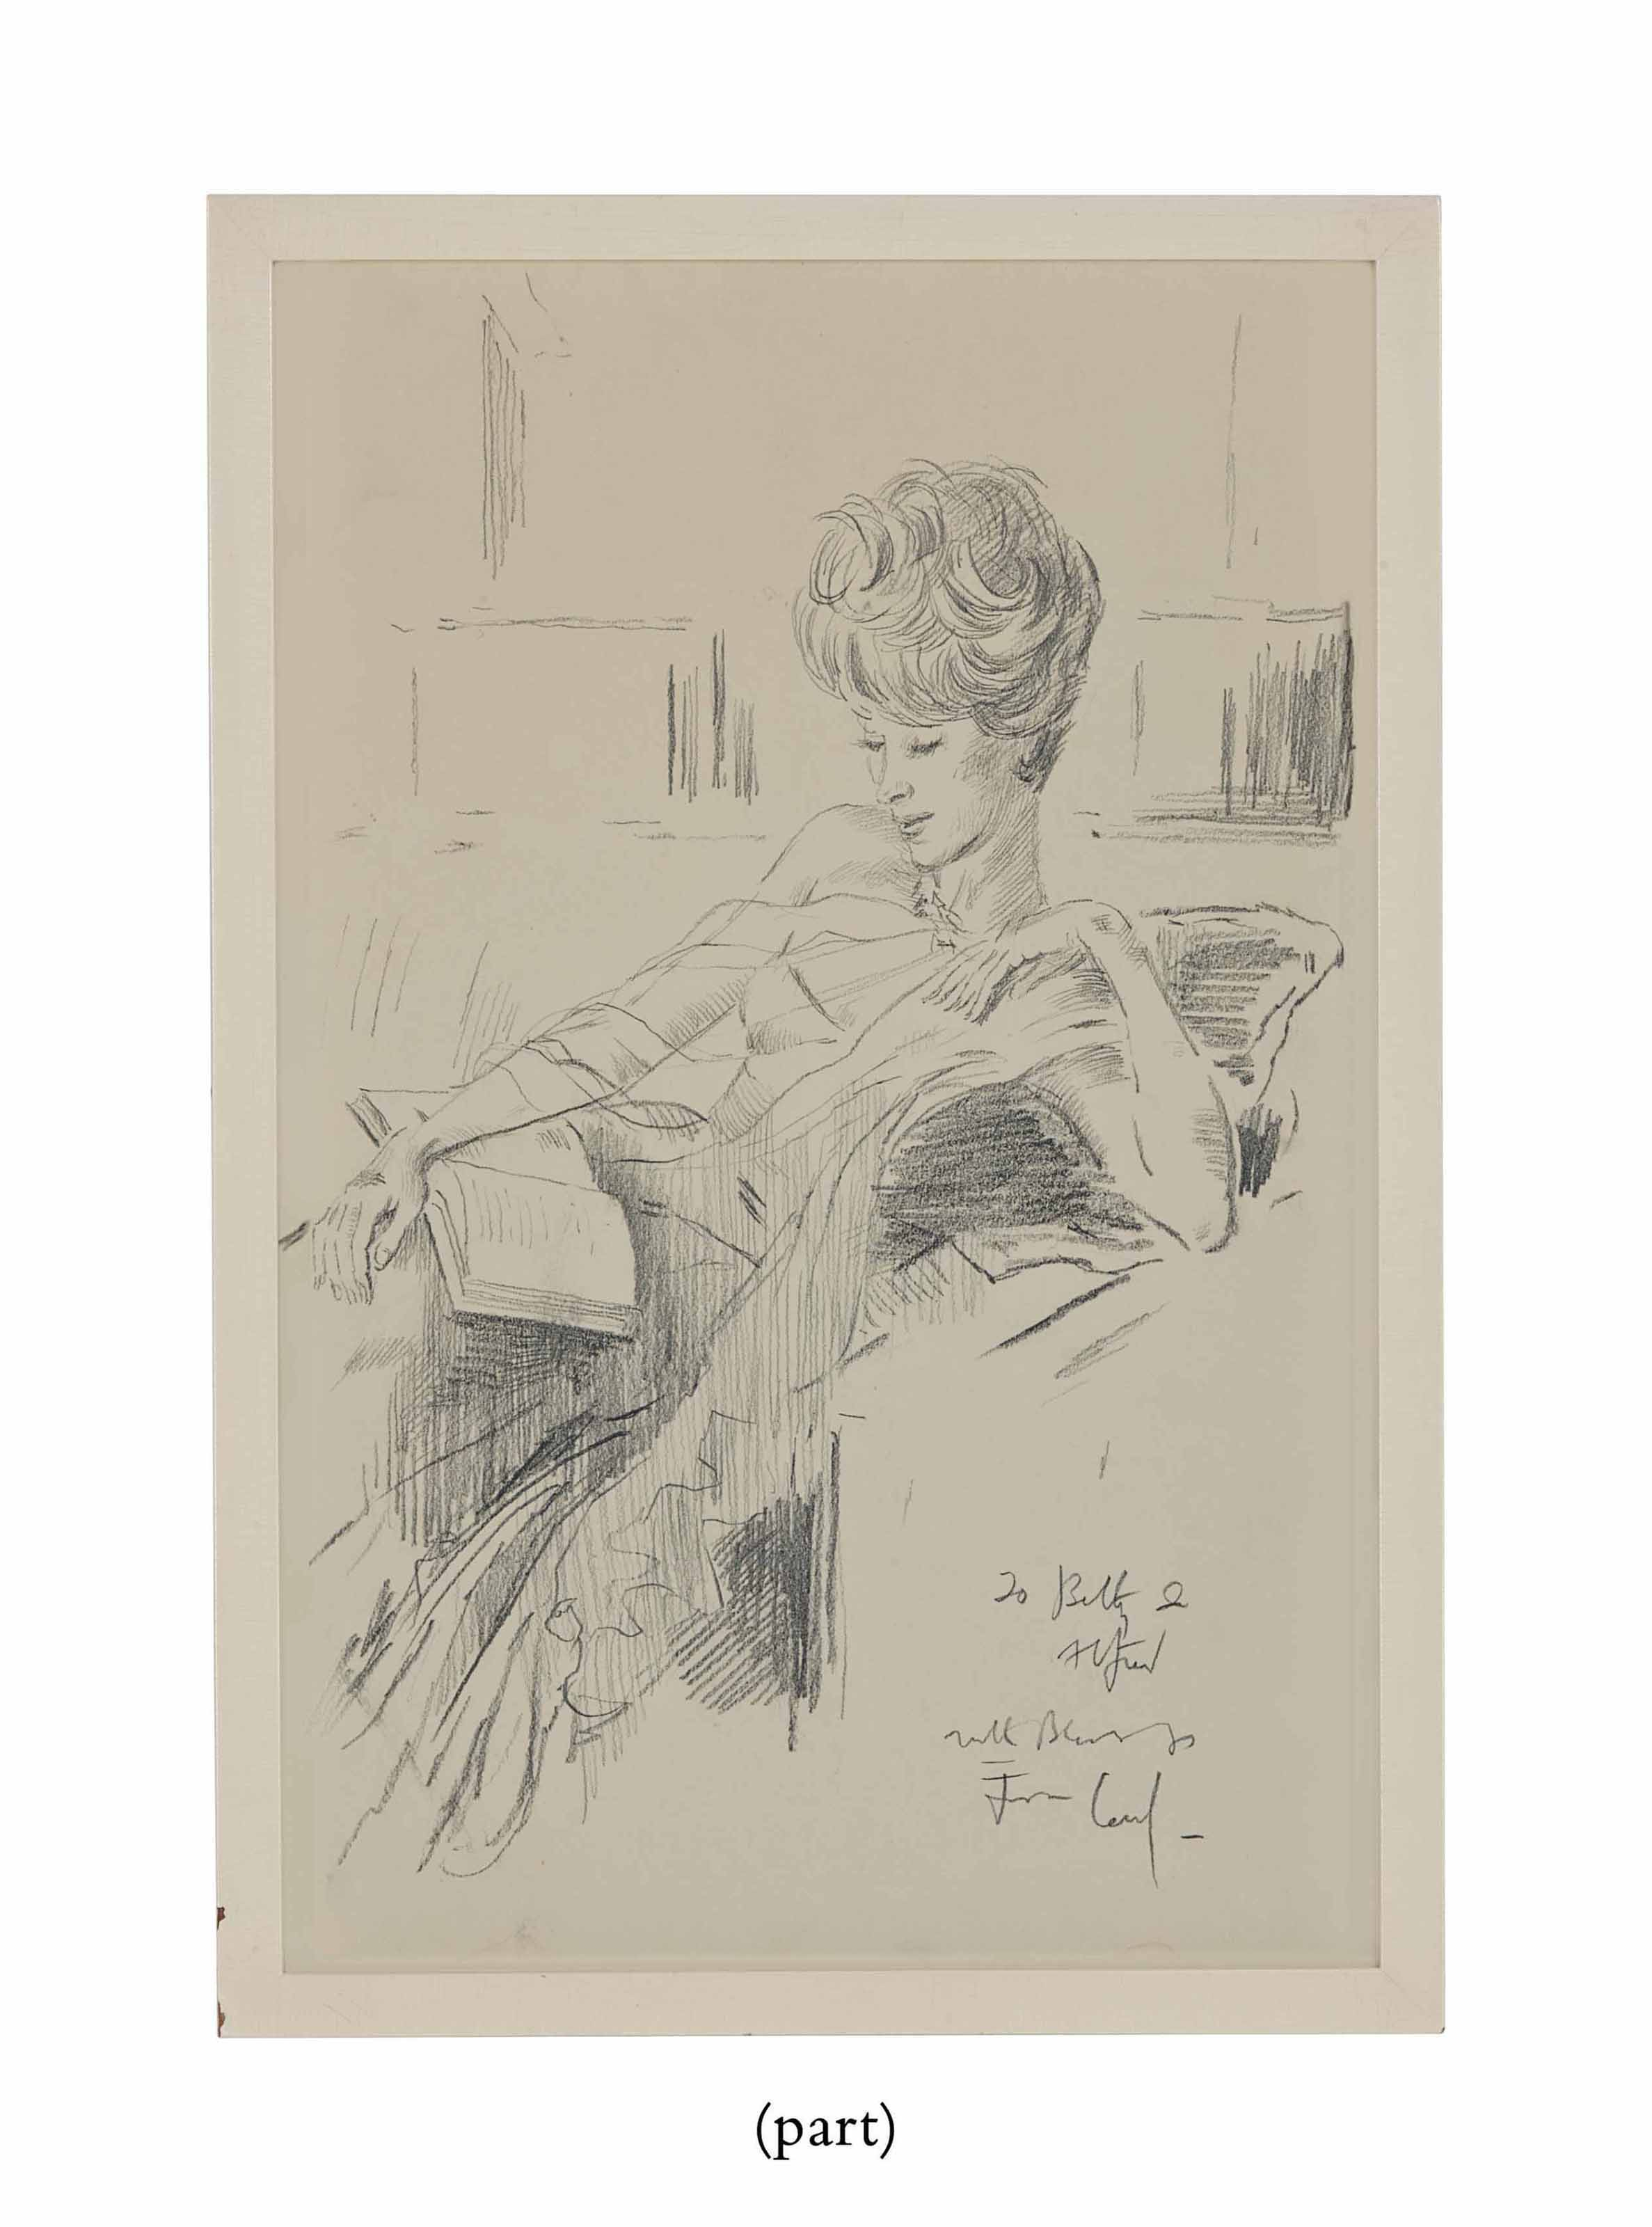 Portrait of Betsy Bloomingdale reading; together with Two books by Beaton, including one presentation copy inscribed by Beaton and with an autographed note signed laid in to Betsy Bloomingdale